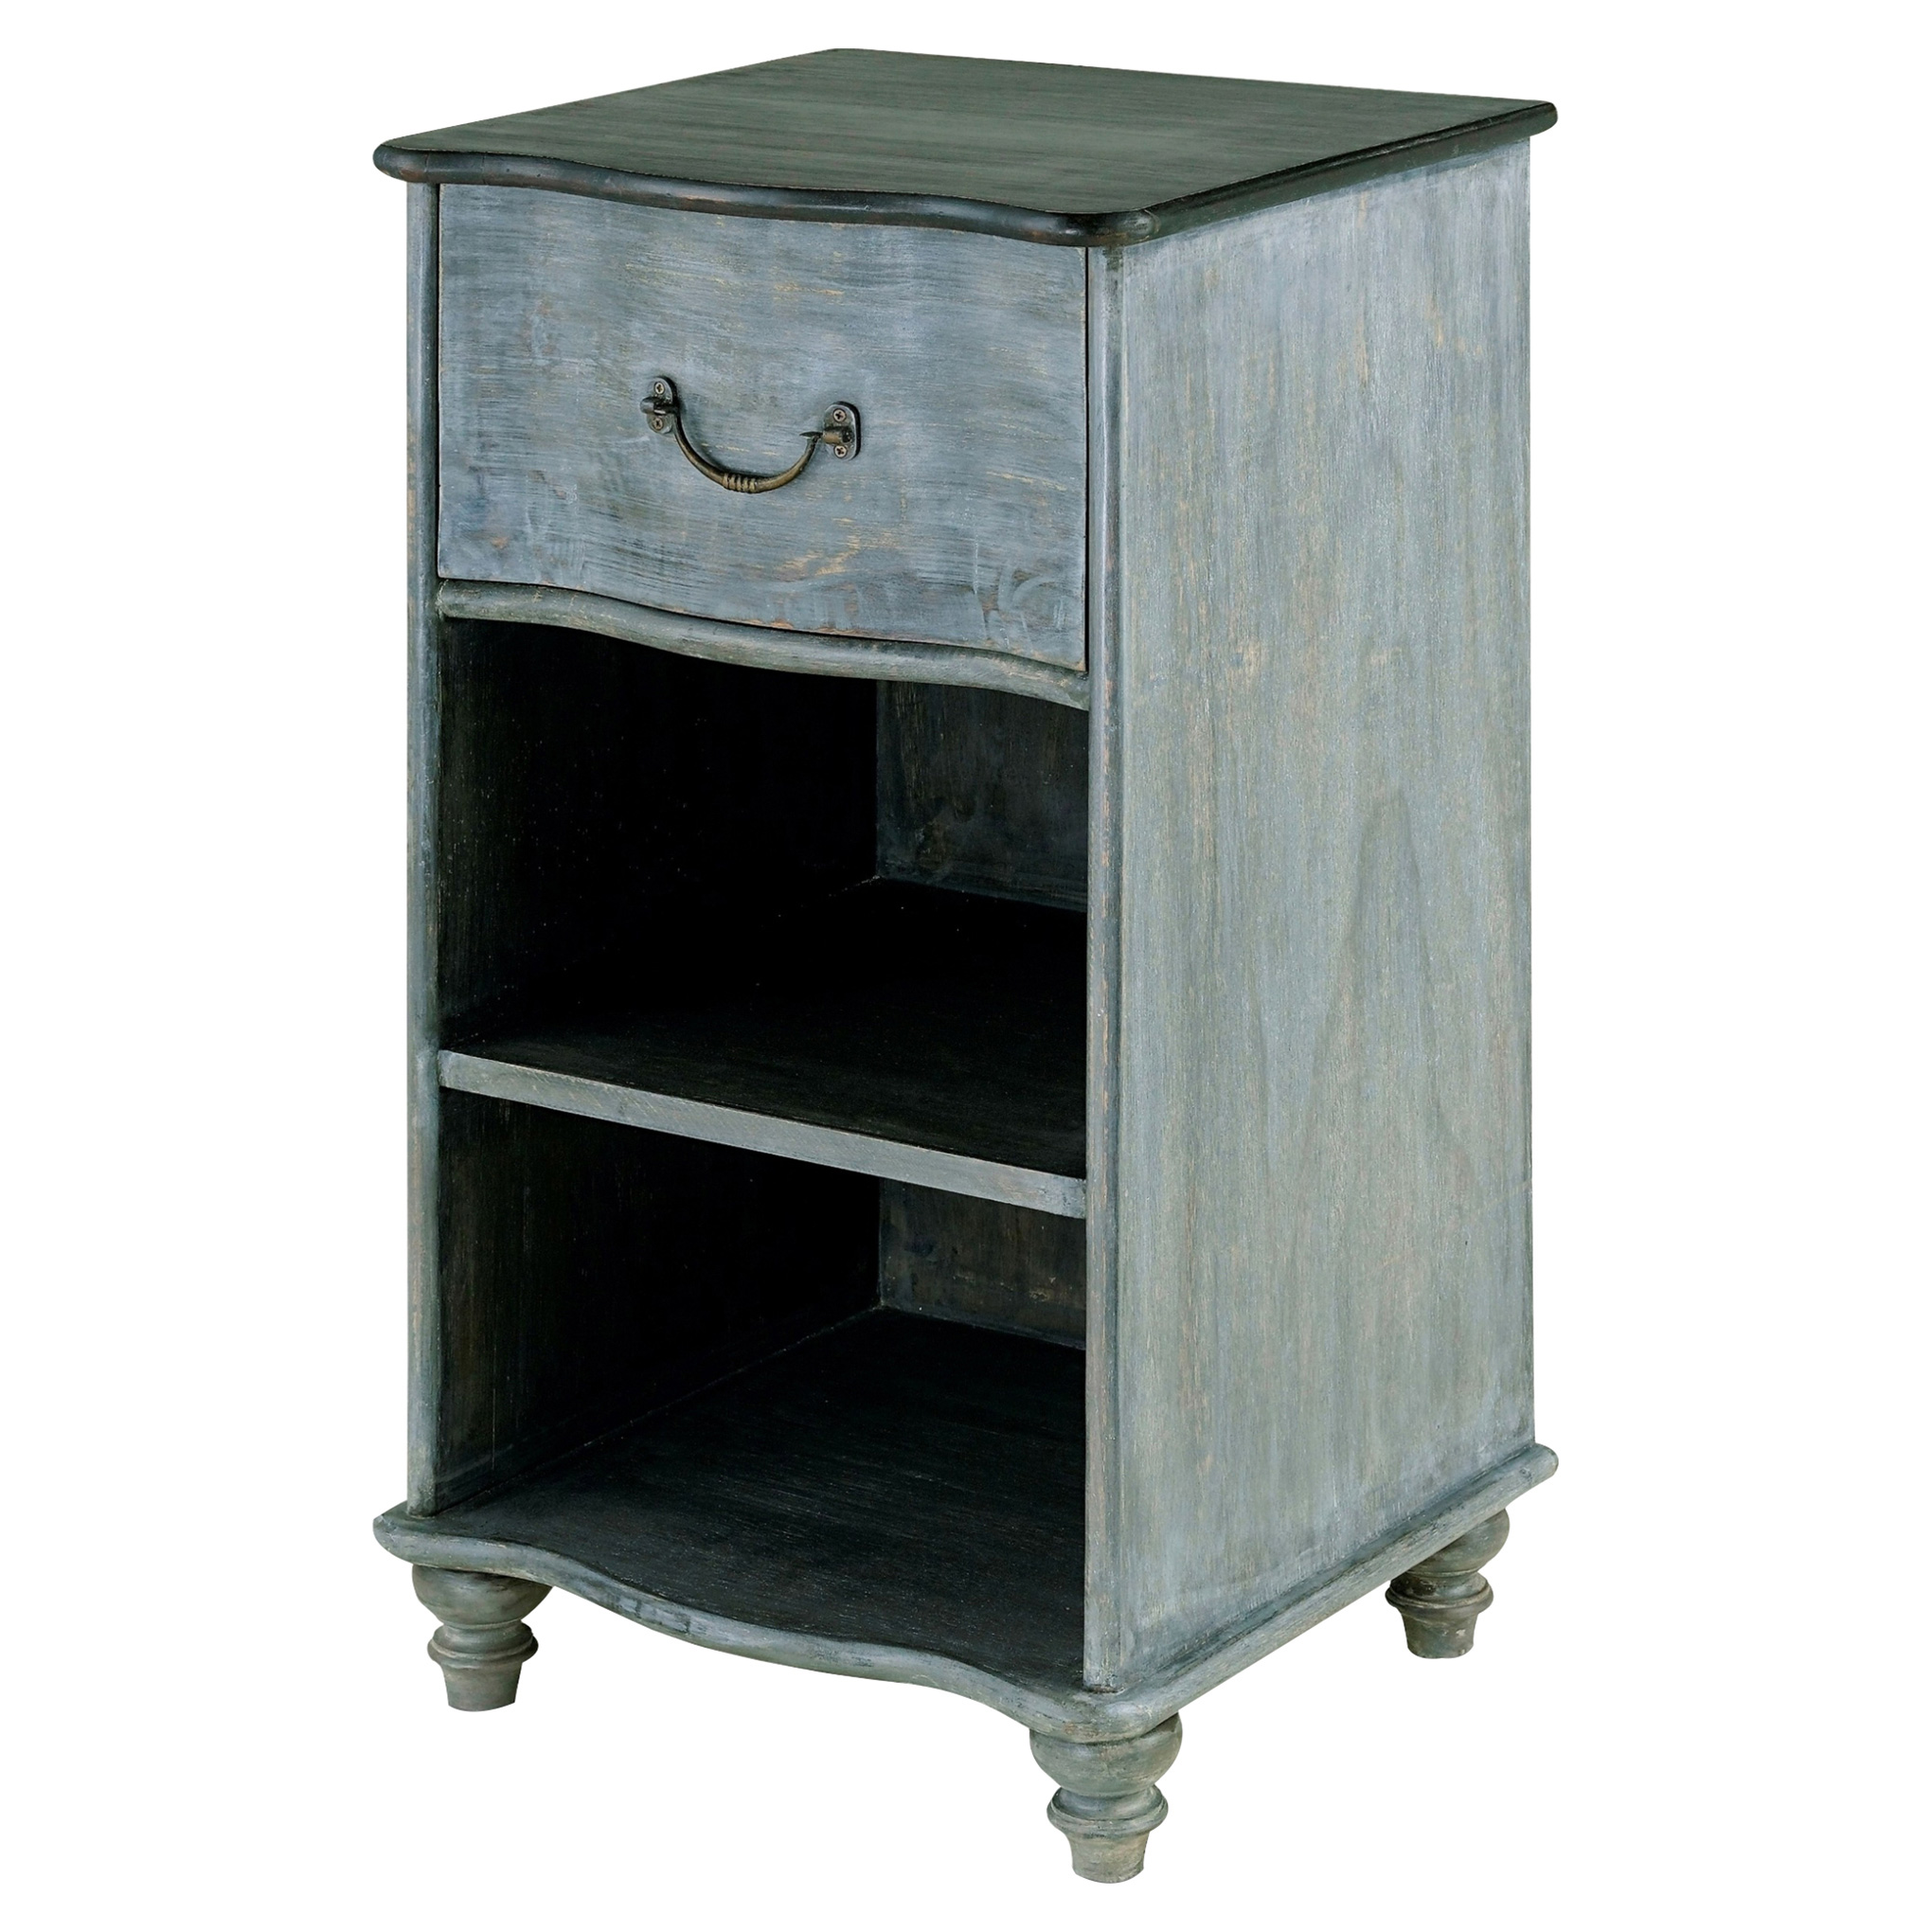 Cocteau French Country Blue Grey Rustic Wood Nightstand